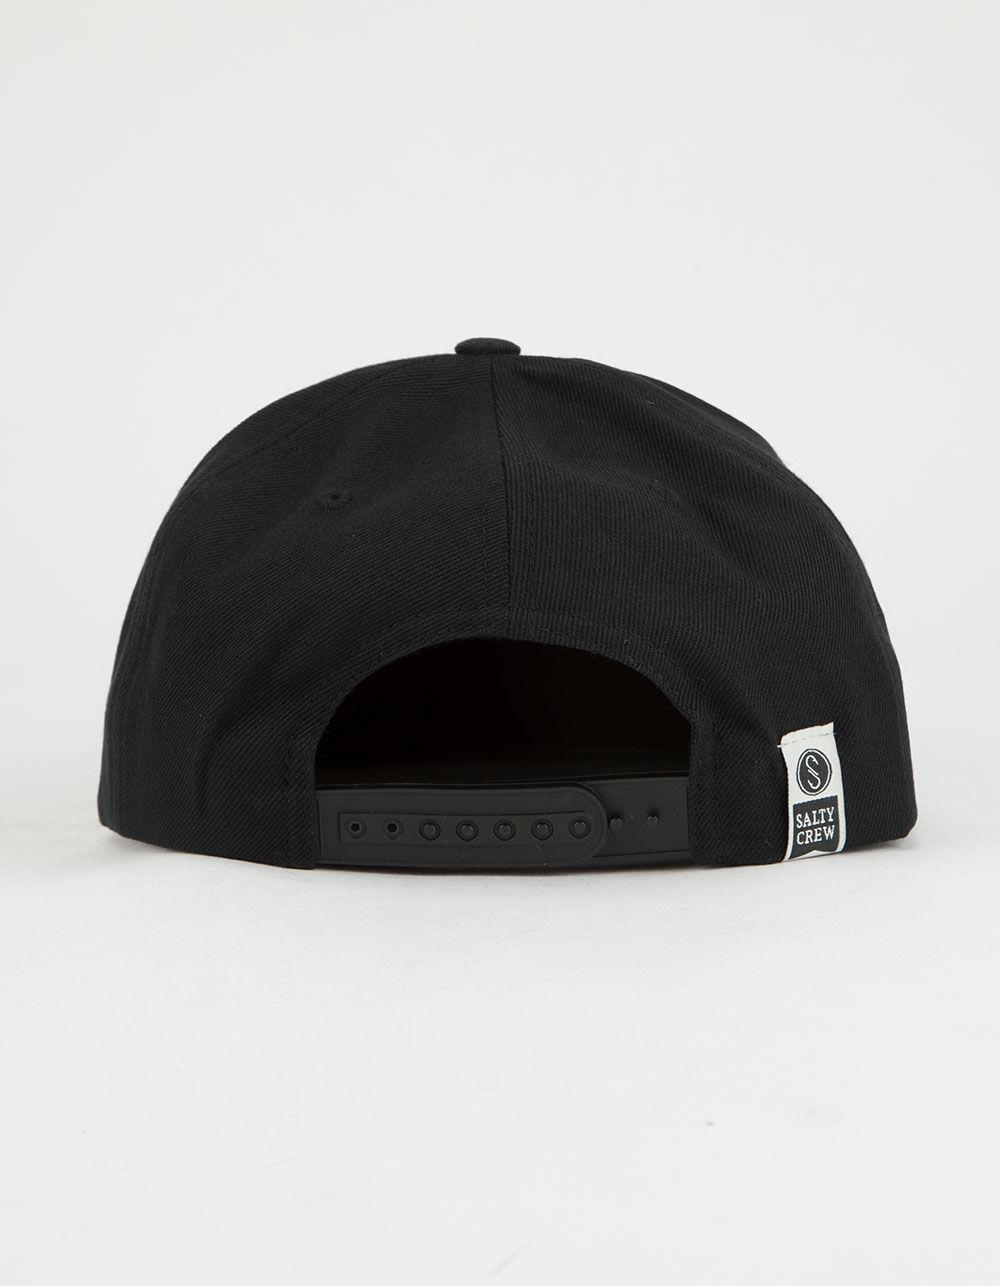 new styles 596ec c6938 ... official store lyst salty crew eight legs mens snapback hat in black  for men 6a6e5 40be3